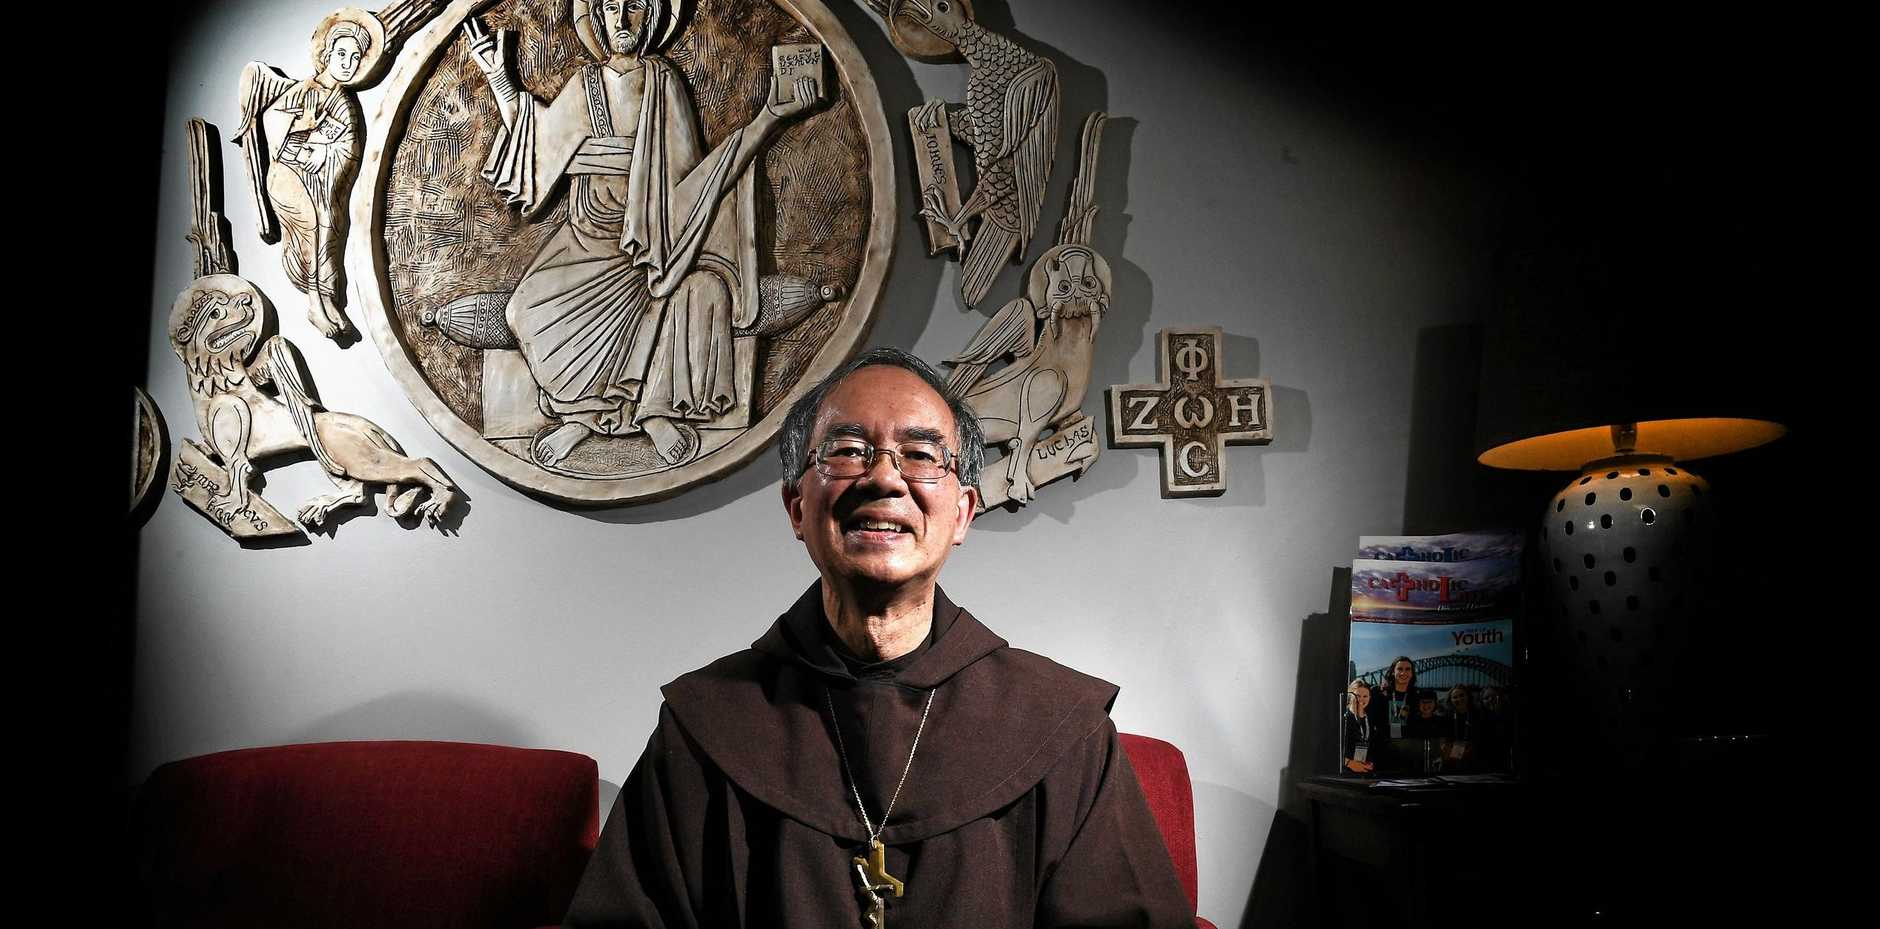 THE sixth bishop of Lismore, father Gregory Homeming , has a plan for the next 15 years of his life, and it involves tackling five issues that are important to him.